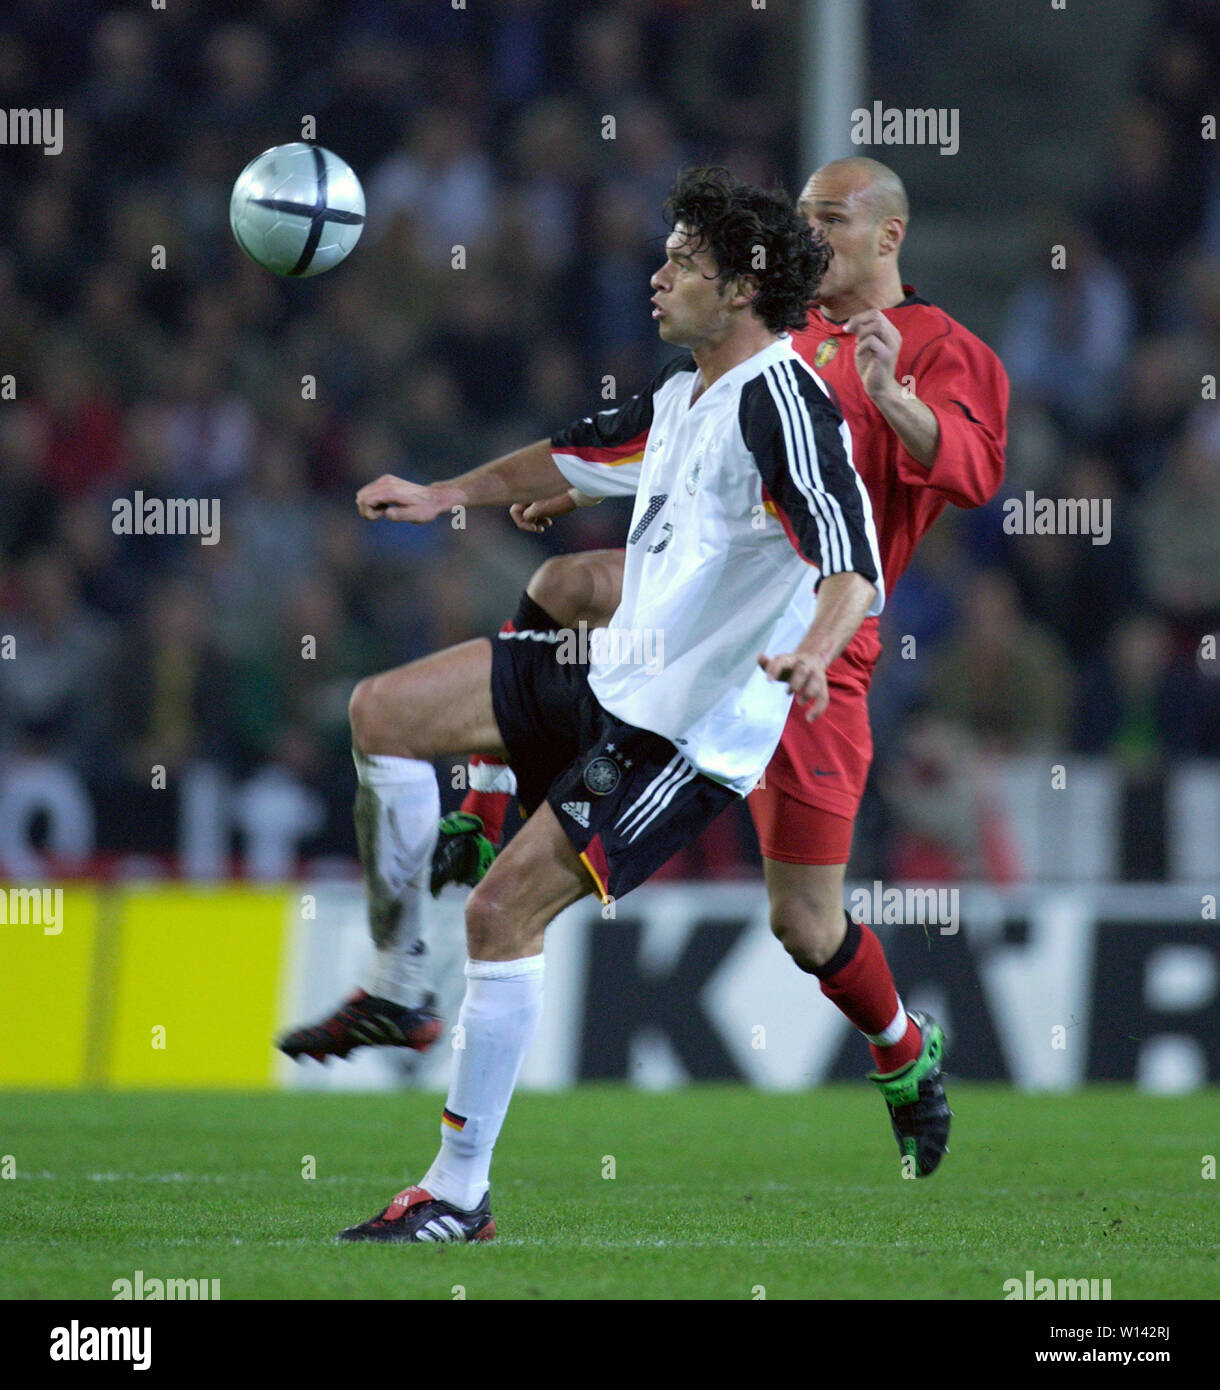 Rhein-Energie-Stadion Cologne Germany, 31.3.2004, Football: International friendly, Germany (white) vs. Belgium (red) 3:0 --- Michael BALLACK (GER) - Stock Image